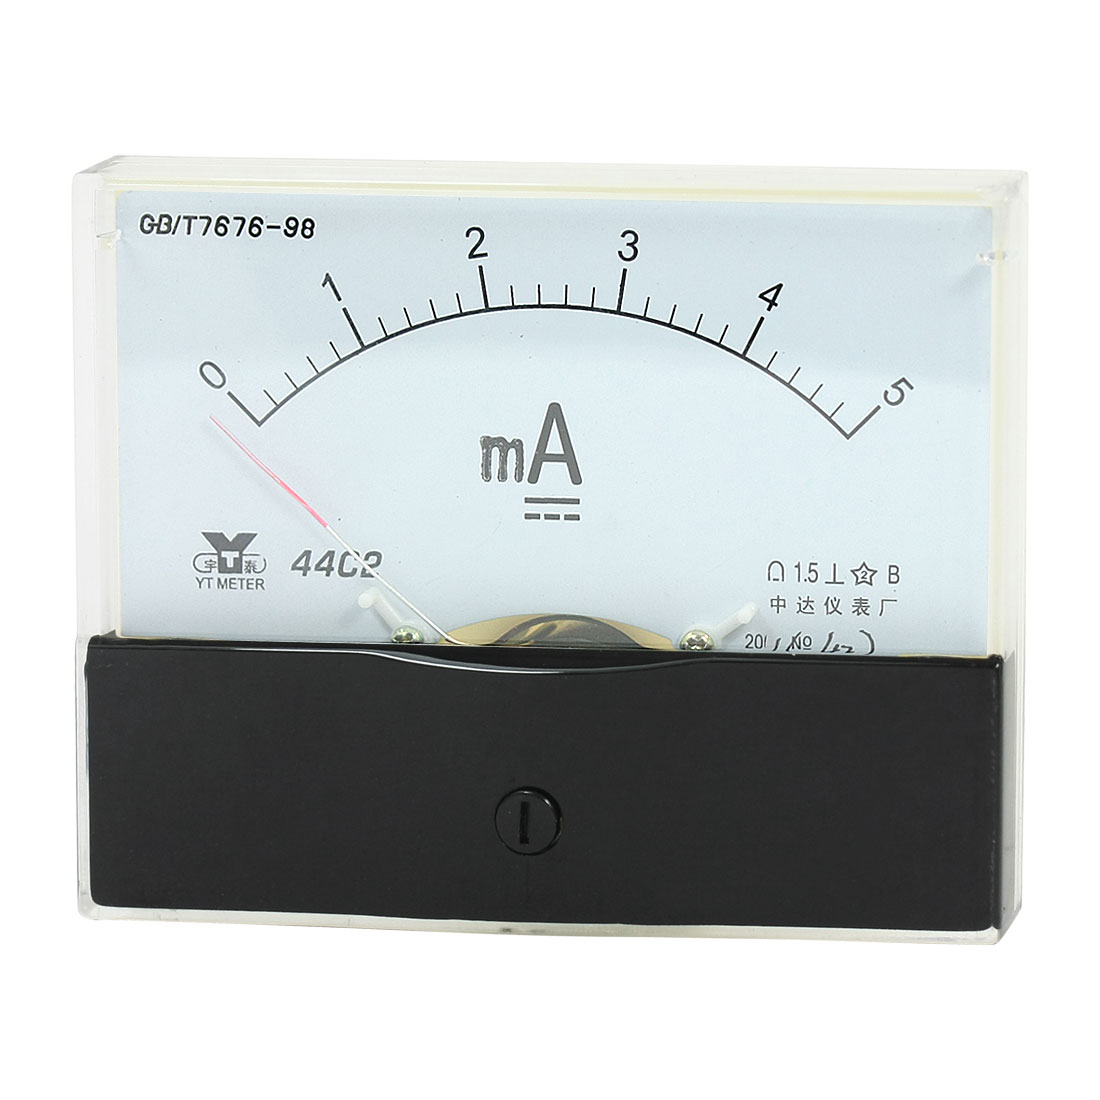 Rectangle Measurement Tool Analog Panel Ammeter Gauge DC 0 - 5mA Measuring Range 44C2